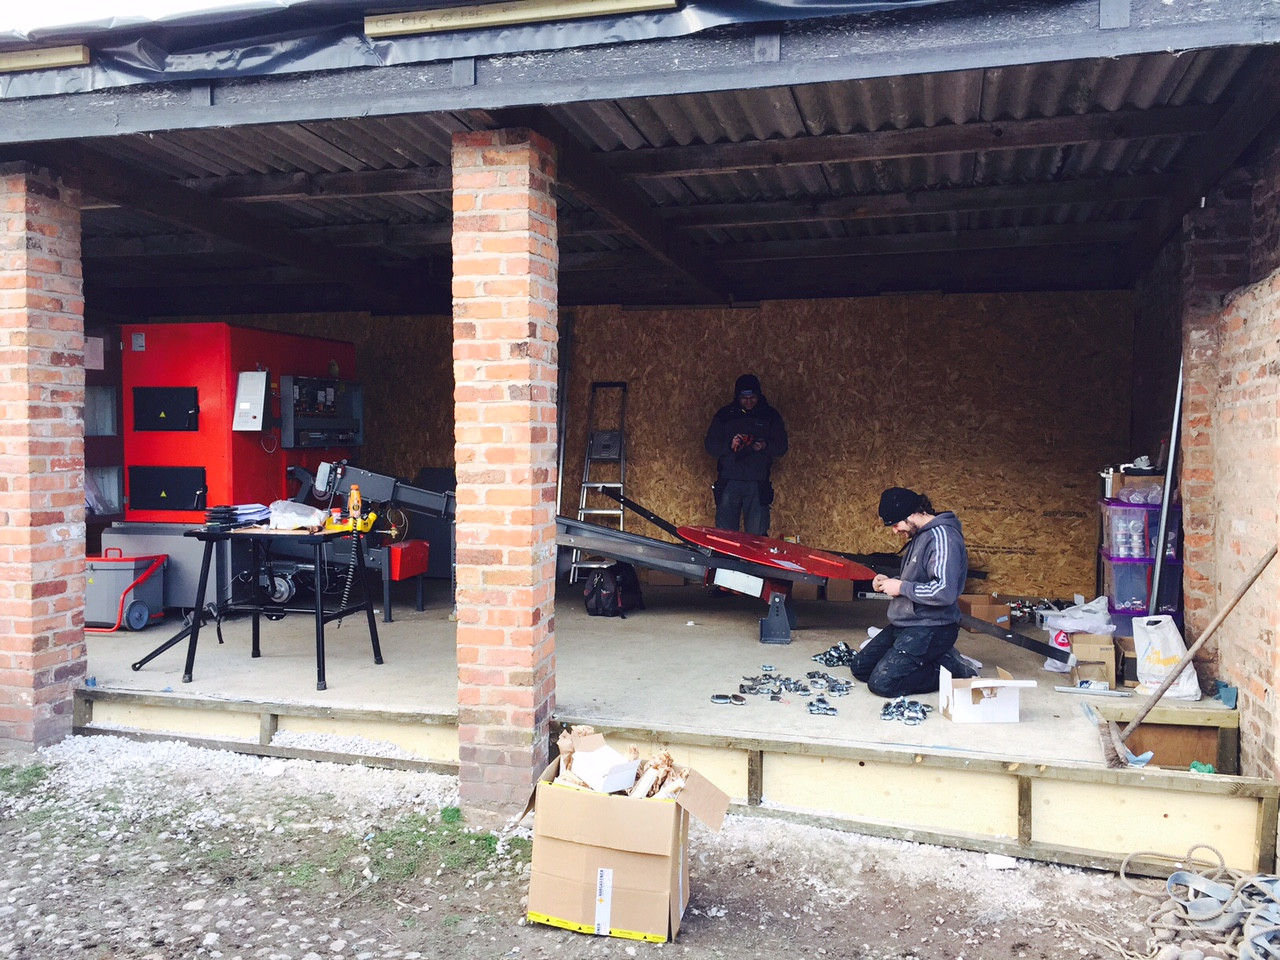 199kWth Chip Biomass Boiler - Multiple Houses, Cheshire